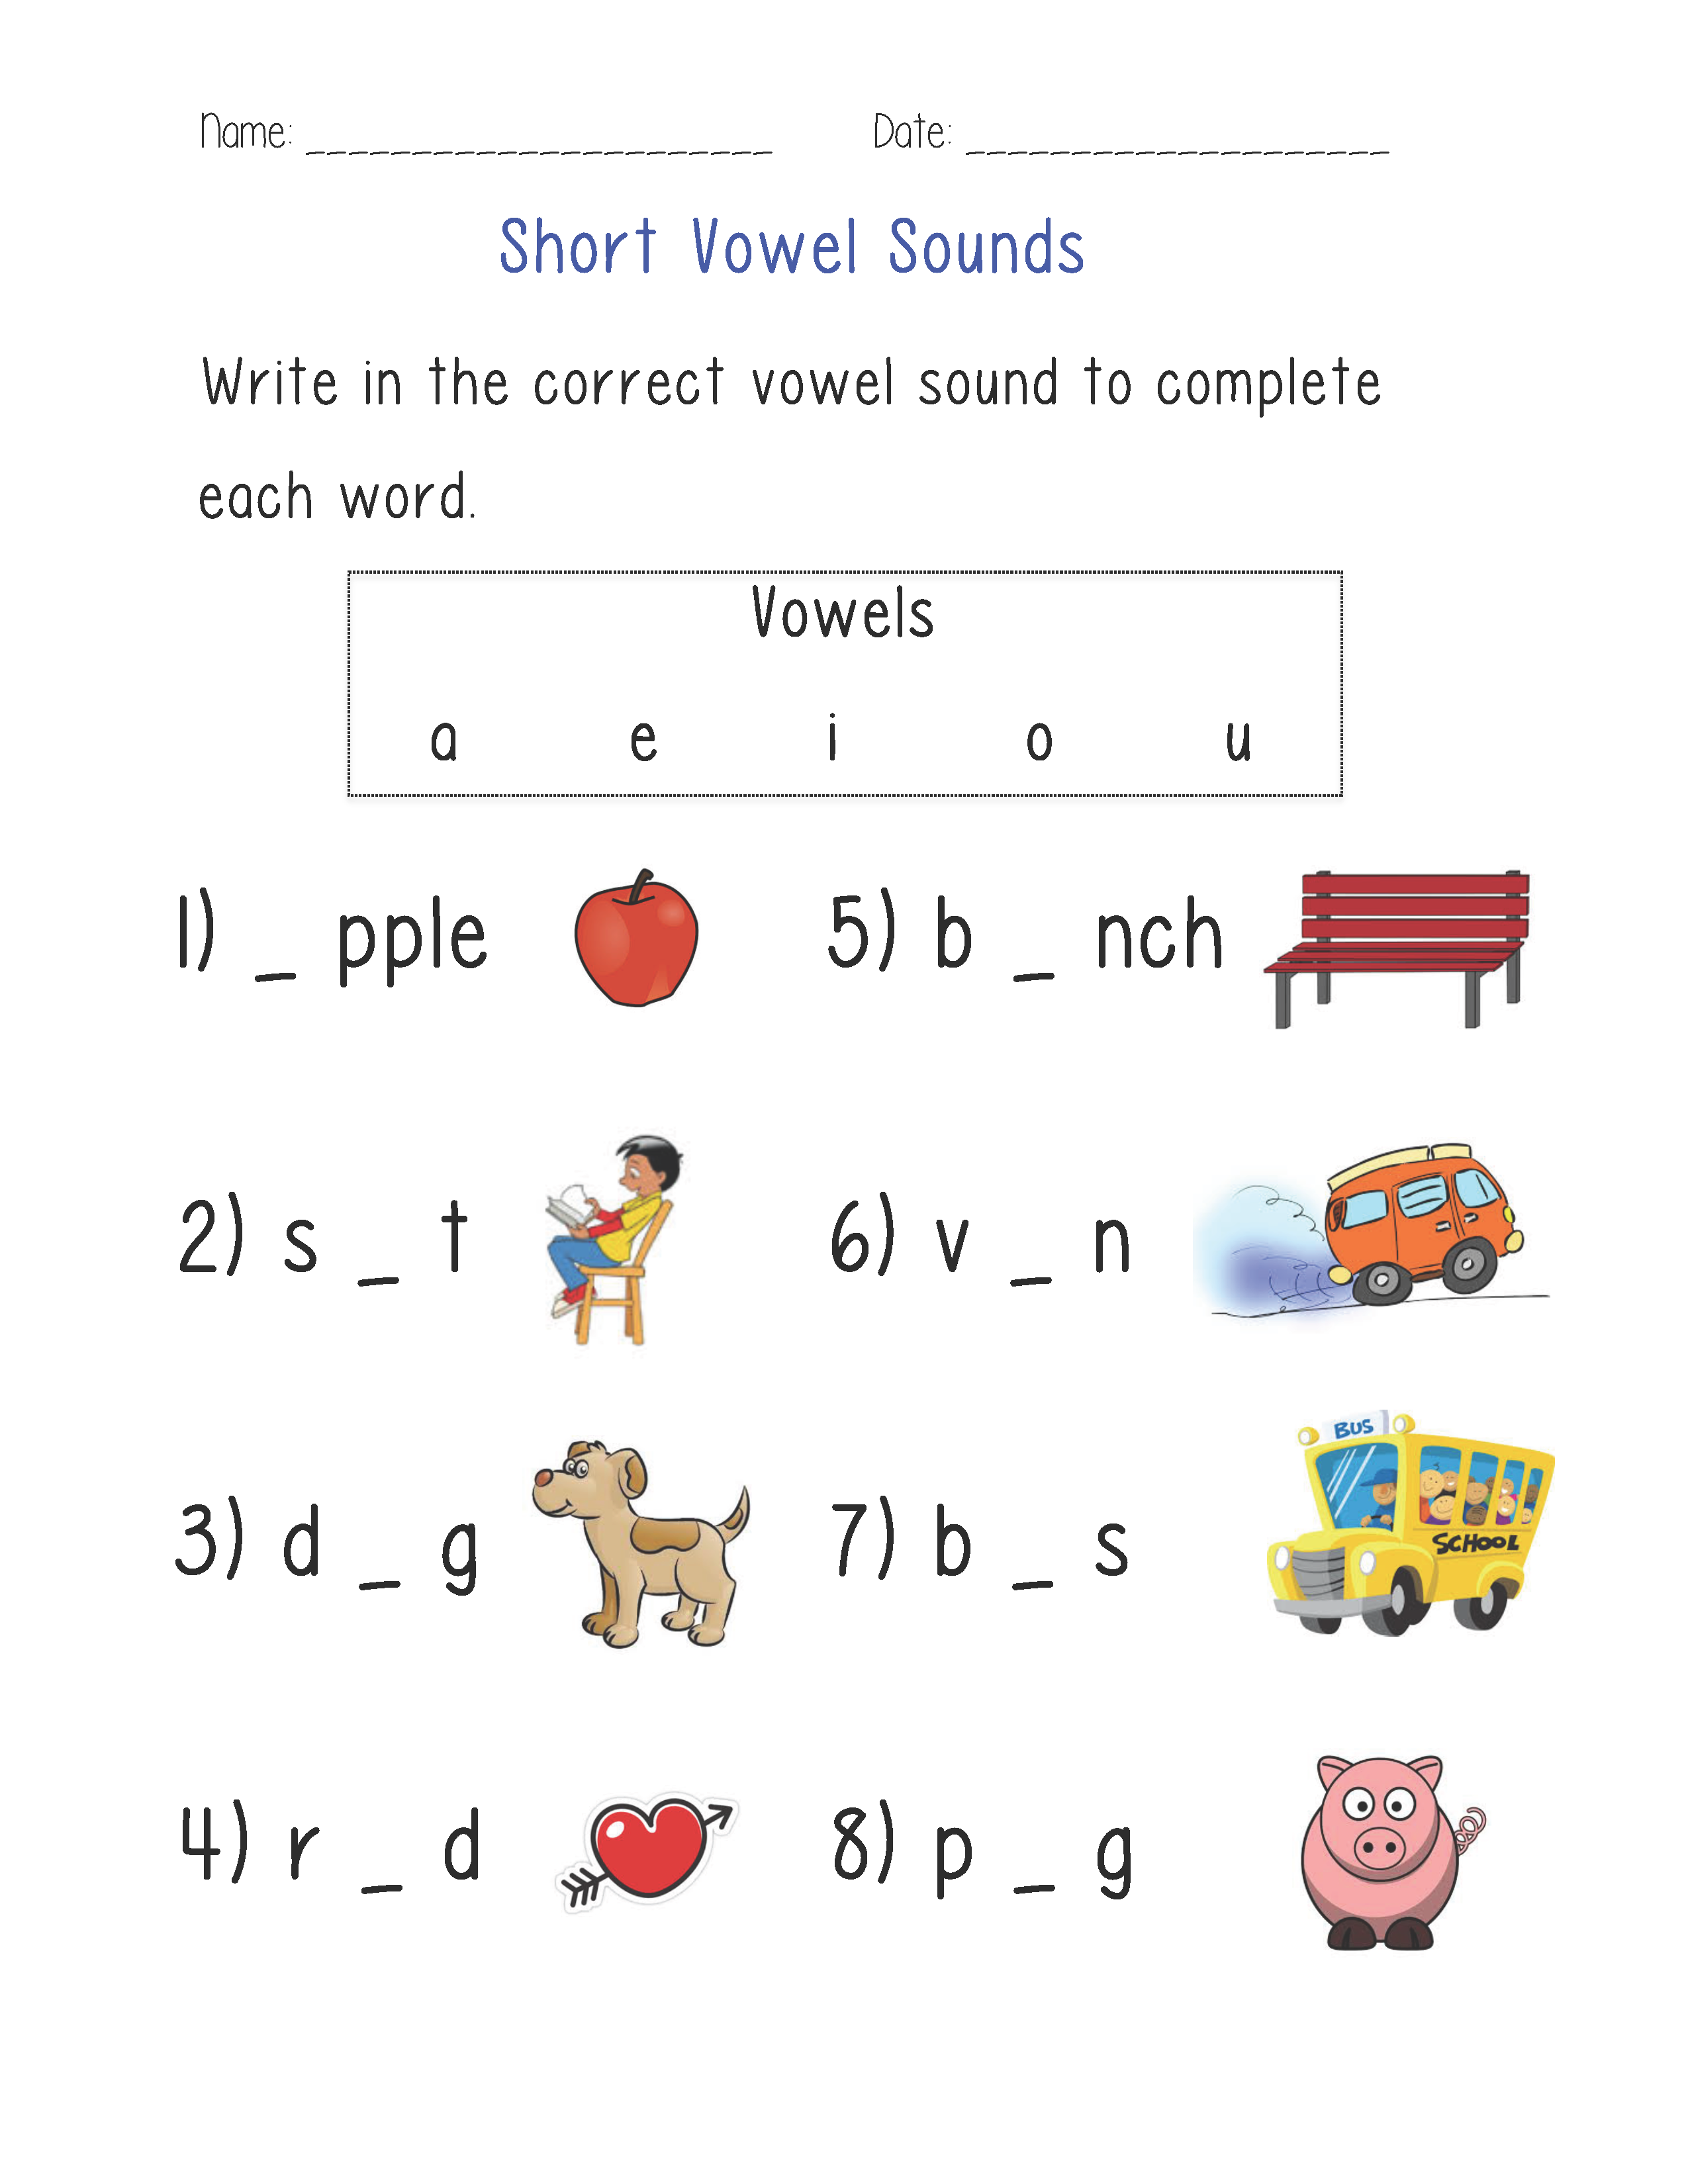 Short Vowel Sounds Worksheet : Englishlinx.com Board : Pinterest : Vowel sounds, Worksheets and ...